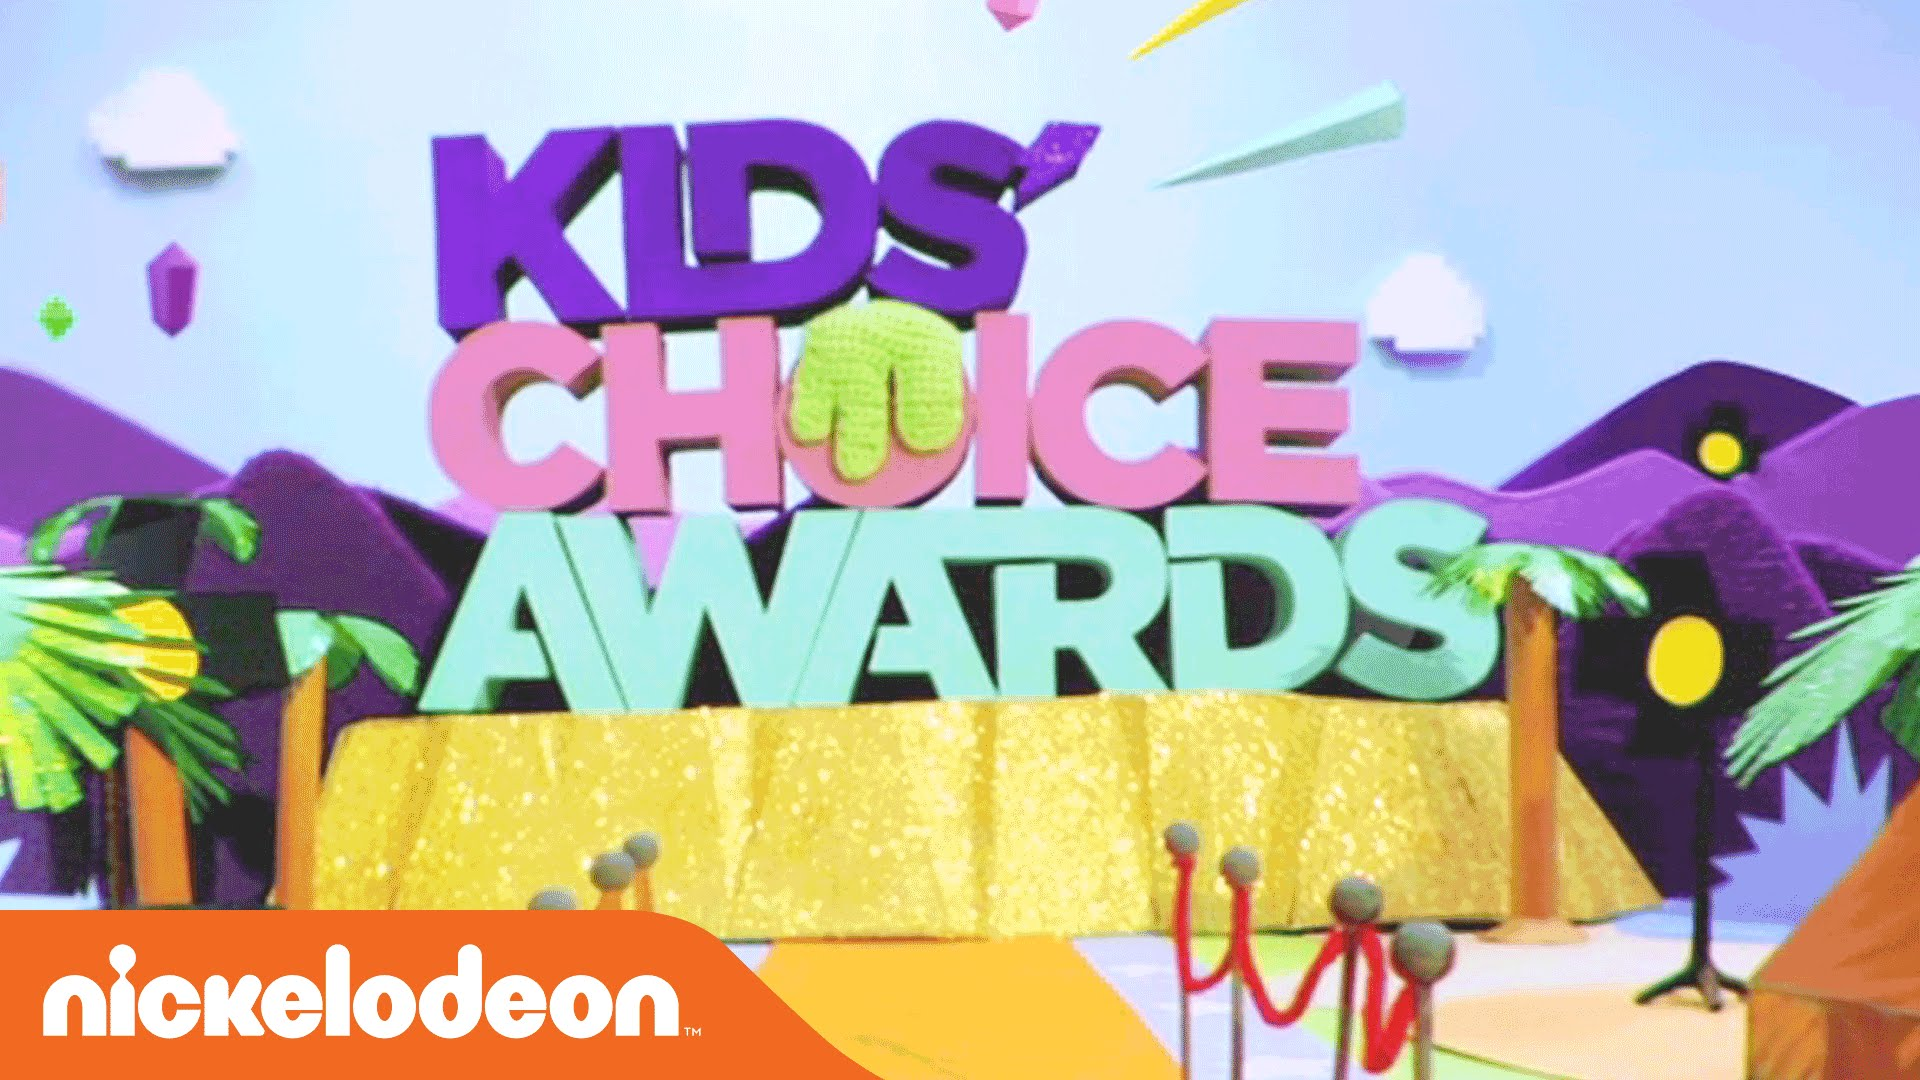 How Do You Get Tickets To The Kids Choice Awards